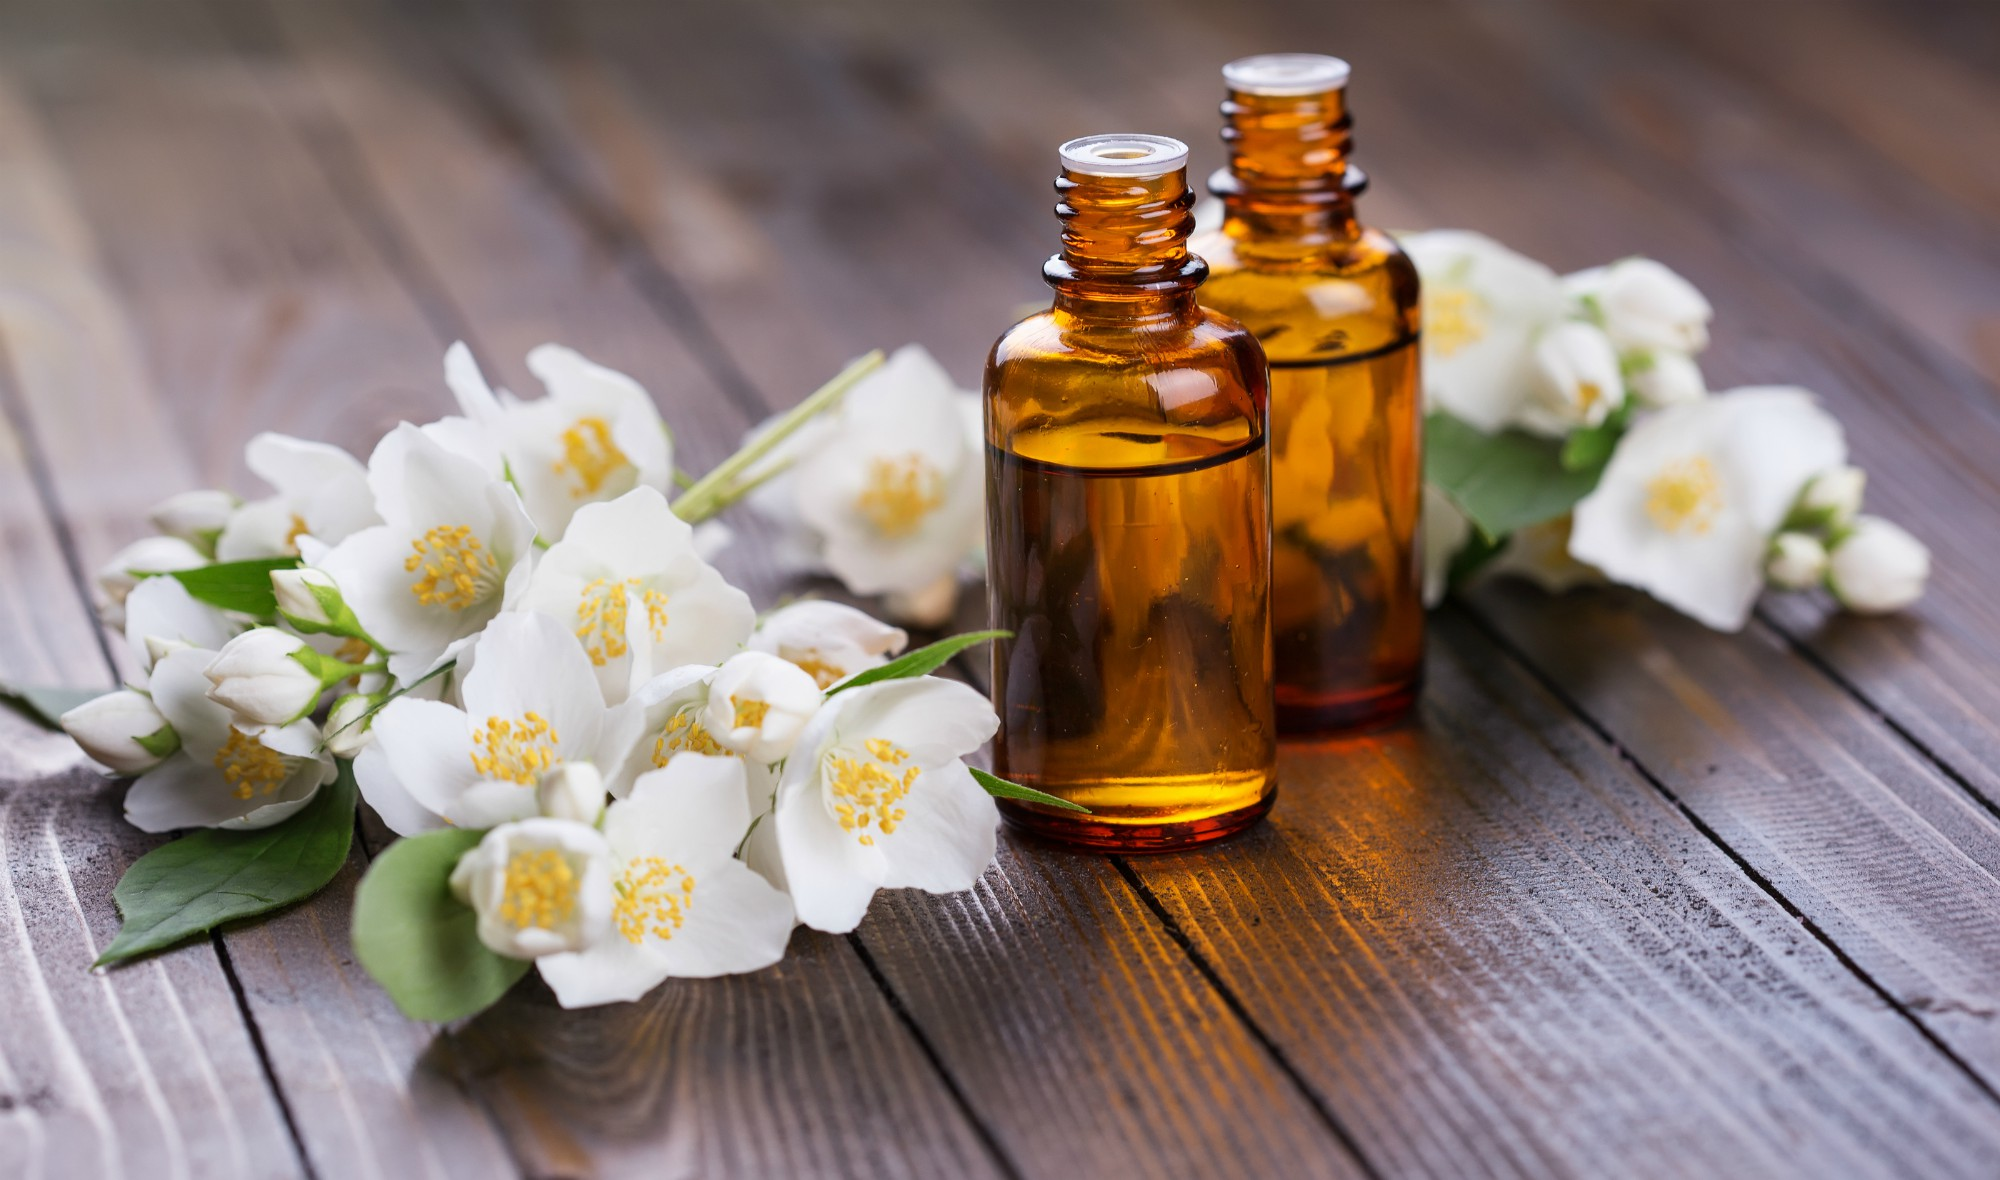 What Are The Benefits of Plant-based Facial Treatment Oils